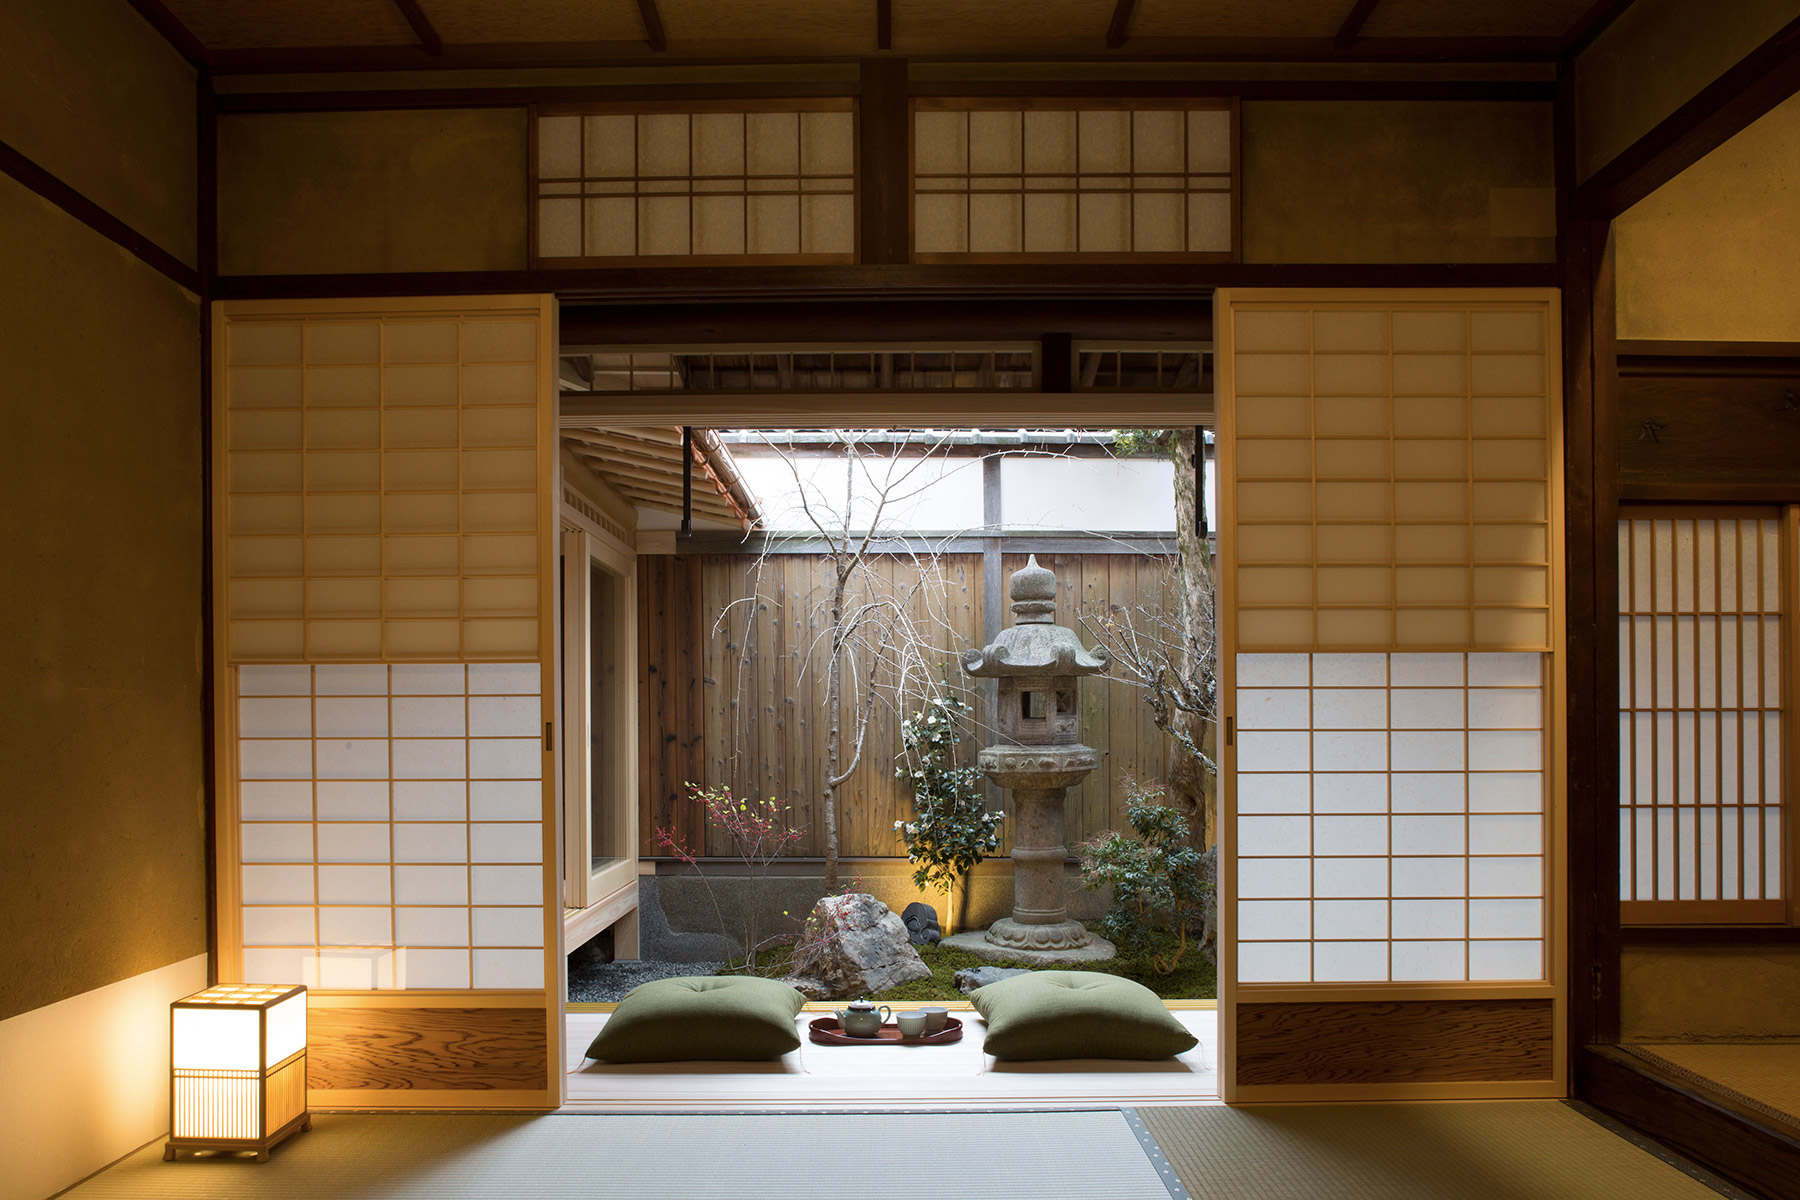 Kyoto townhouse for sale